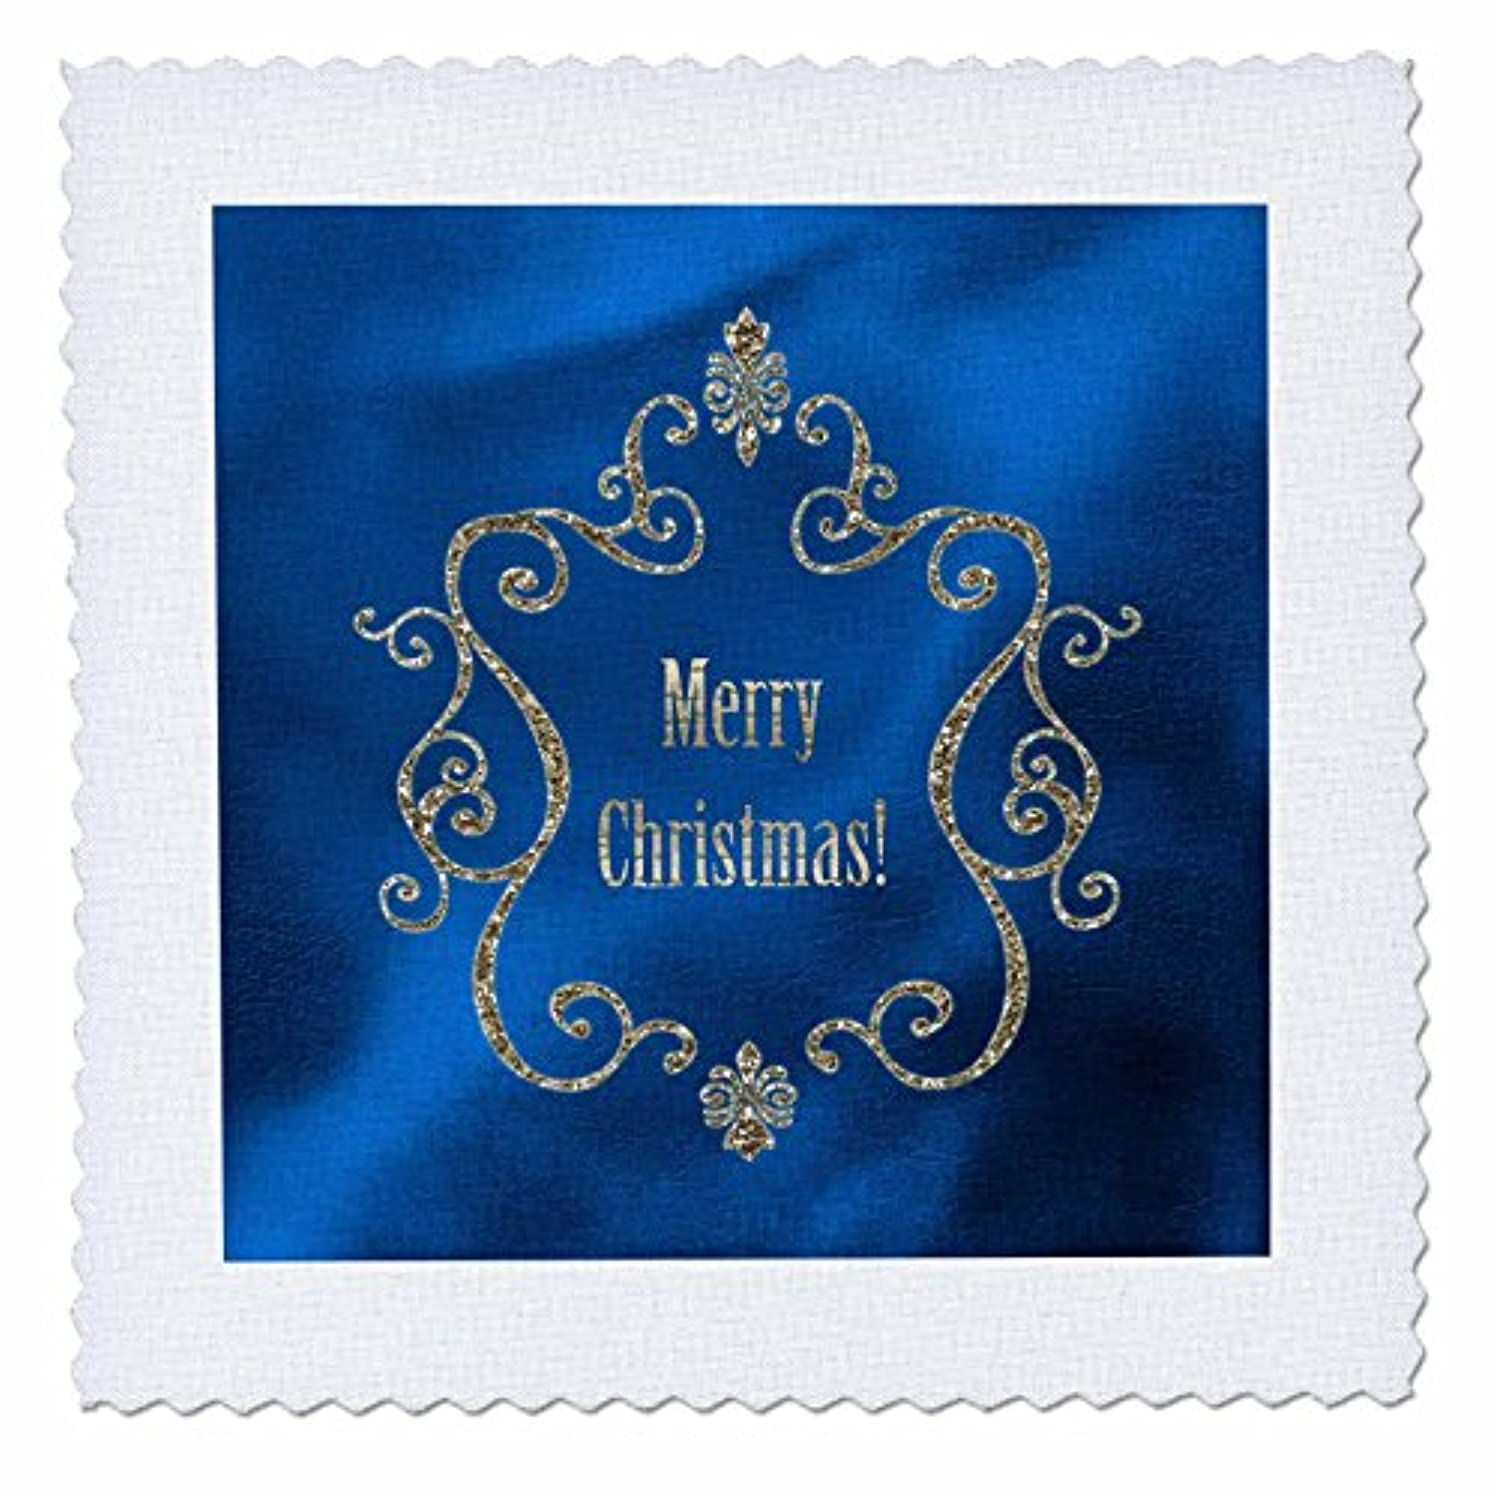 3dRose qs_167307_6 Elegant Gold Jewel Look Frame with Merry Christmas on Blue Quilt Square, 16 by 16-Inch